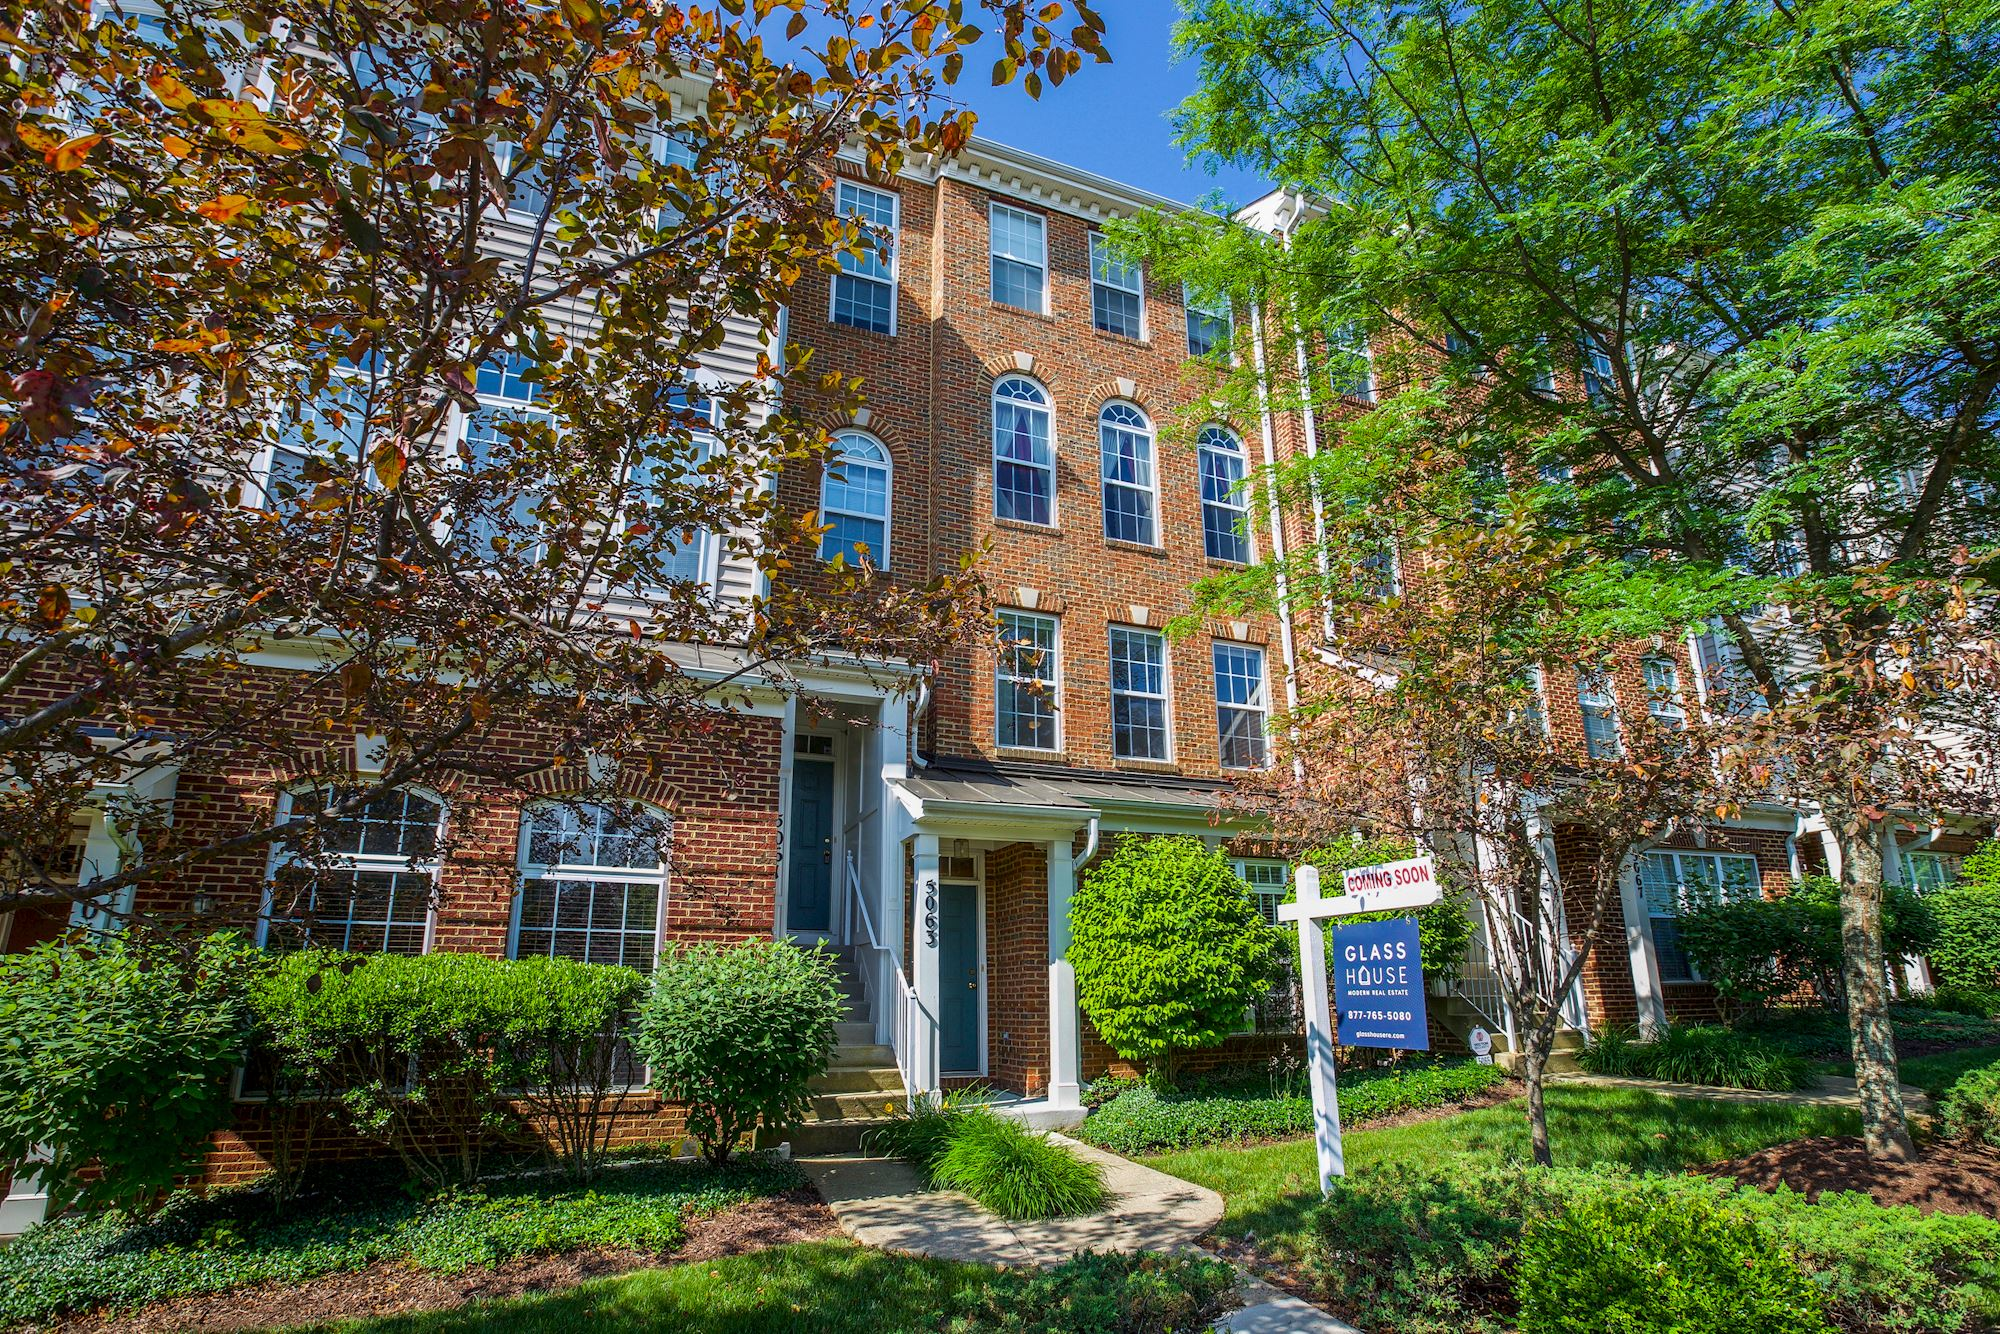 NEW LISTING: 2 BD 2 story Condo in Woodbridge, VA